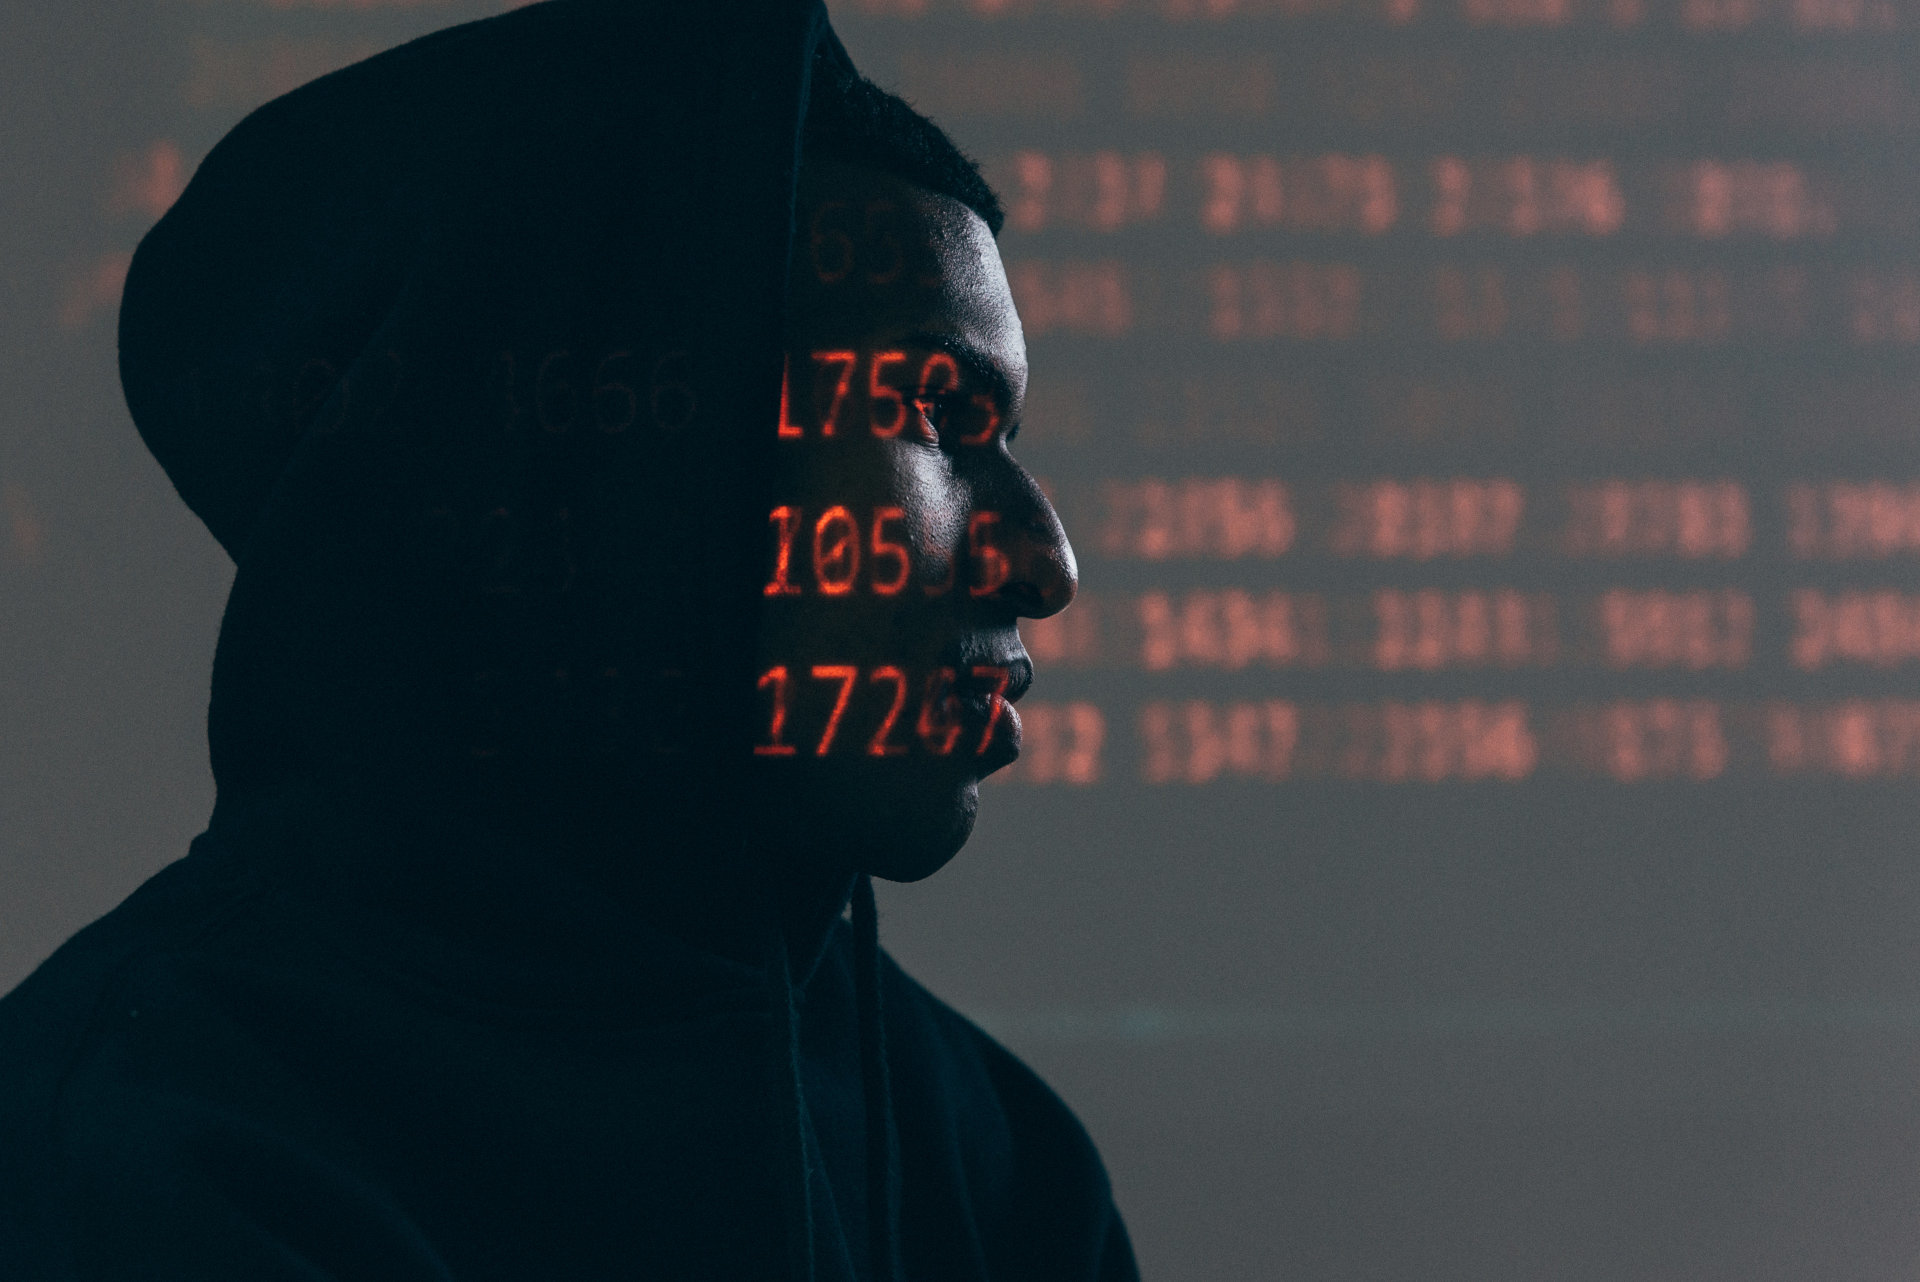 guy in black hoodie with code in background